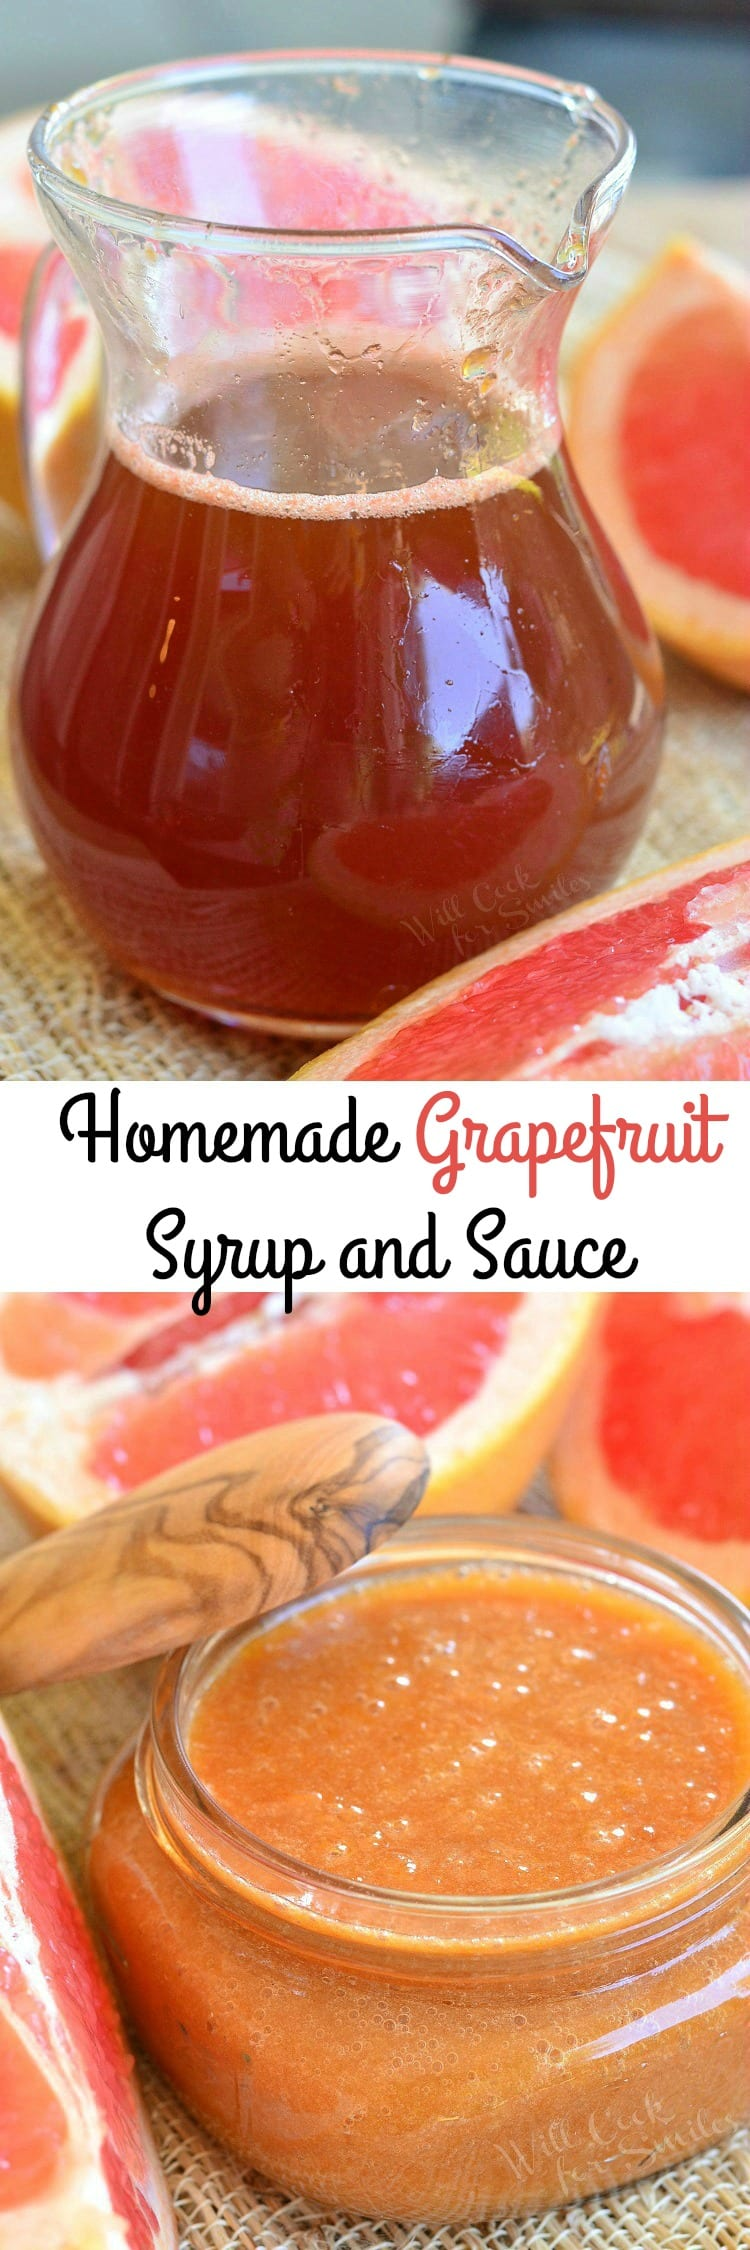 Homemade Grapefruit Syrup and Sauce. SWEET and TANGY sauce and syrup that would be PERFECT for topping of breakfast dishes or mixing into baked goods.